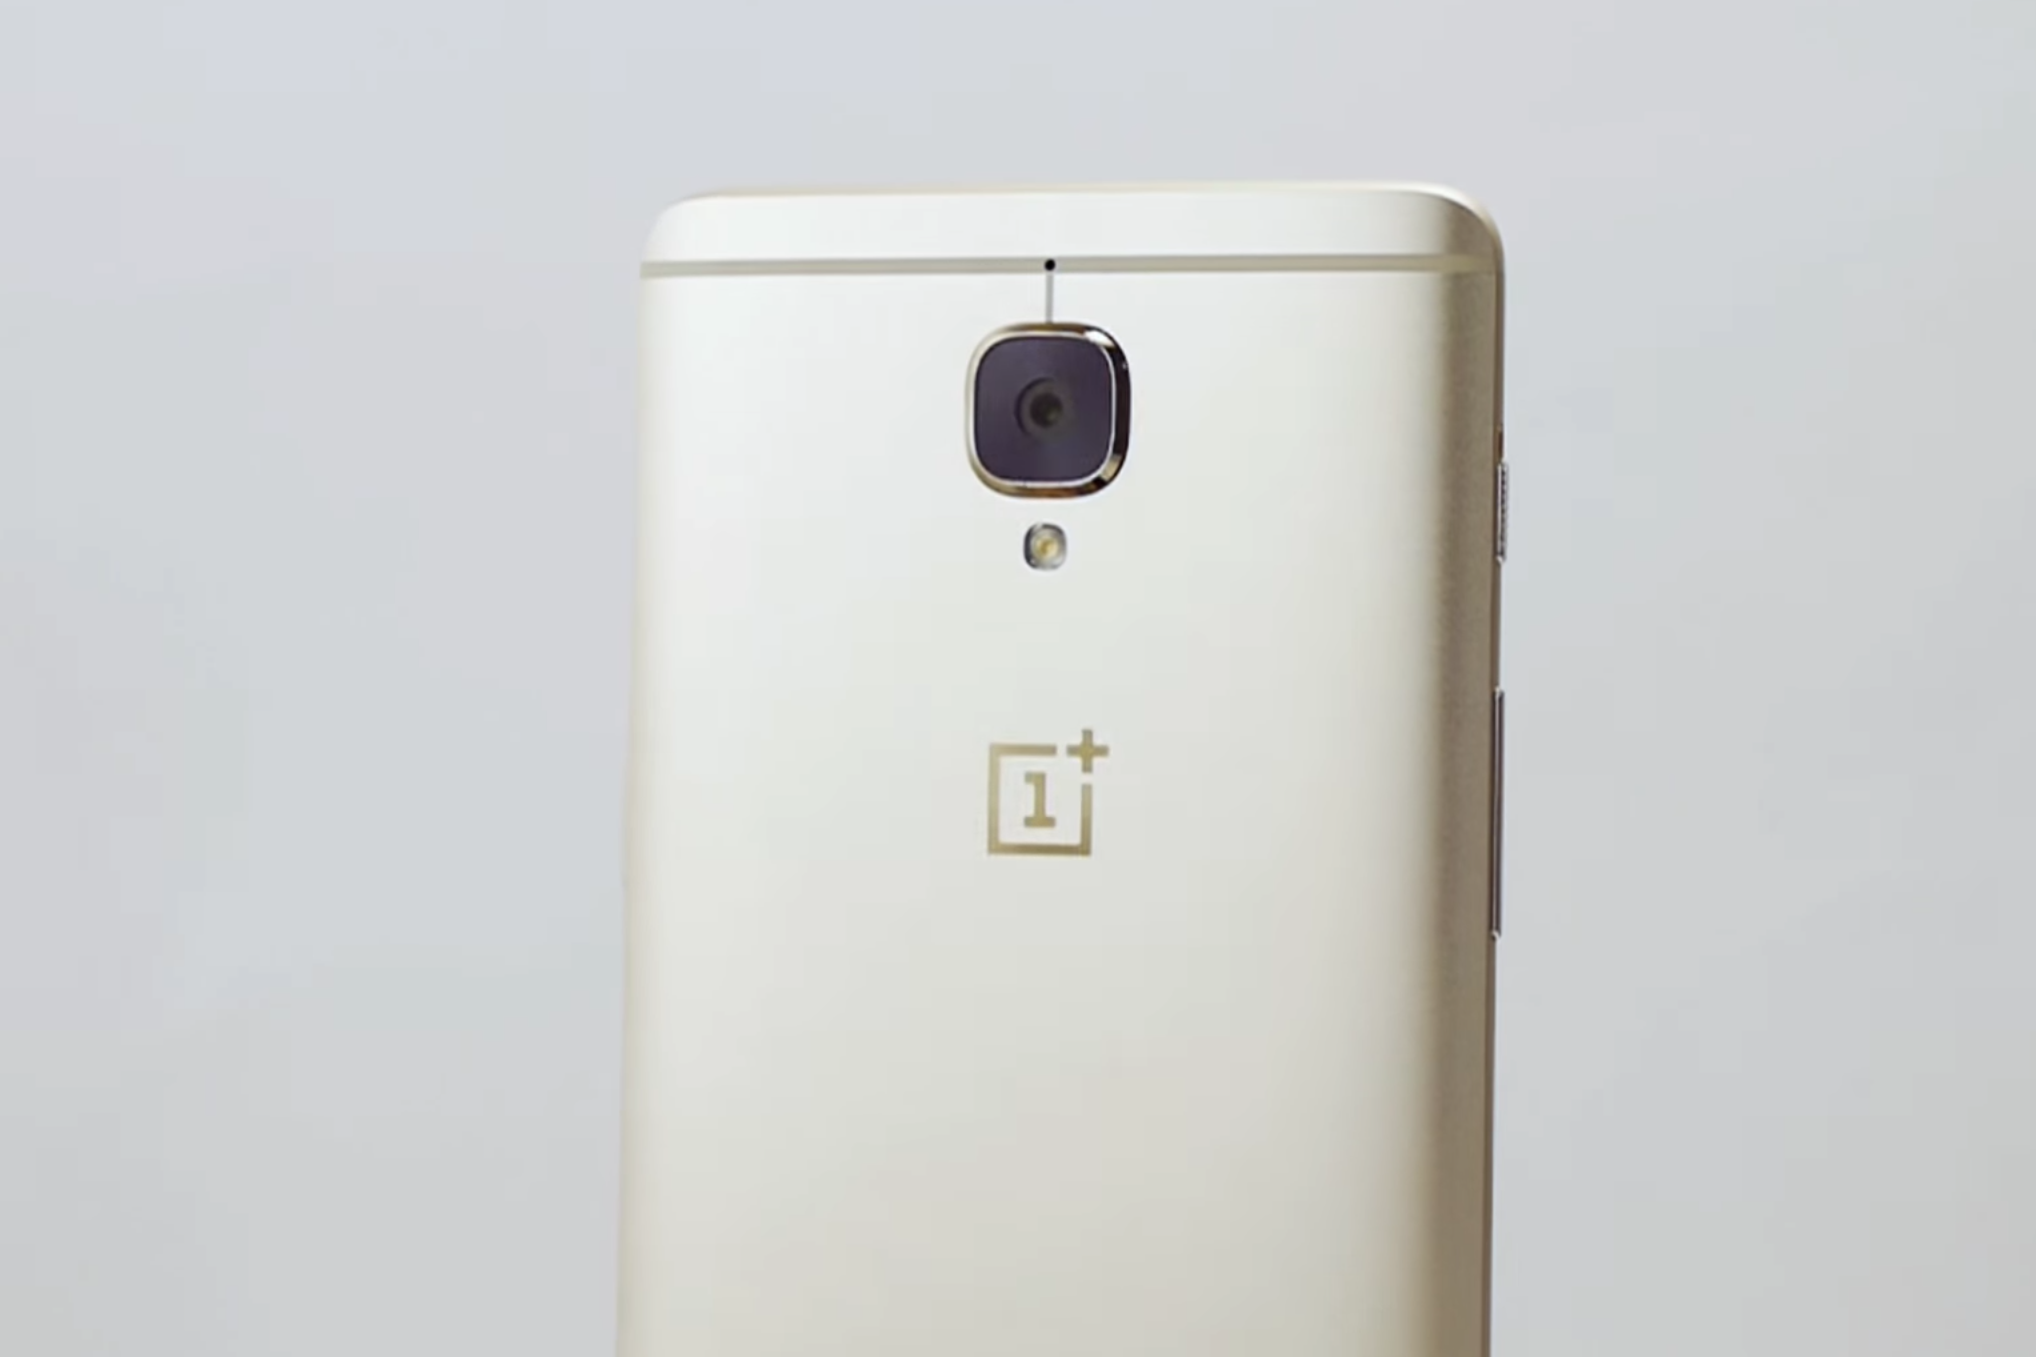 You can buy the gold OnePlus 3 tomorrow in the US